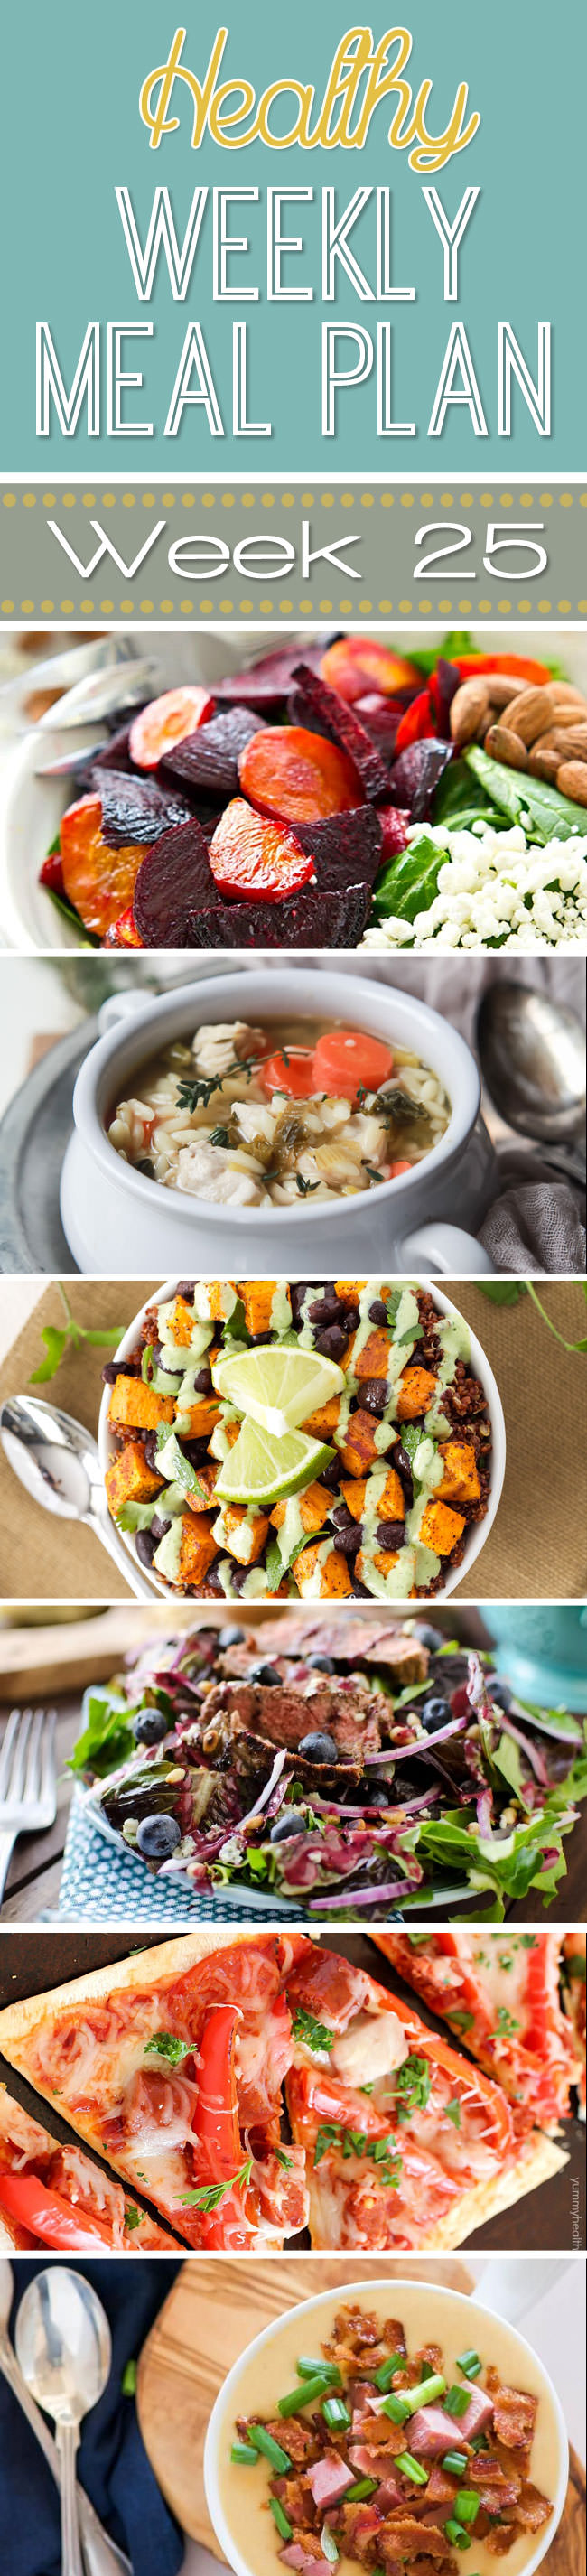 This week's meal plan includes delicious meals, such as the Sweet Potato and Black Bean Quinoa Bowls! There is not one thing I don't like so its a sure winner. And the Healthy Cashew Butter Cookie Dough Bark? There may not be enough to go around!